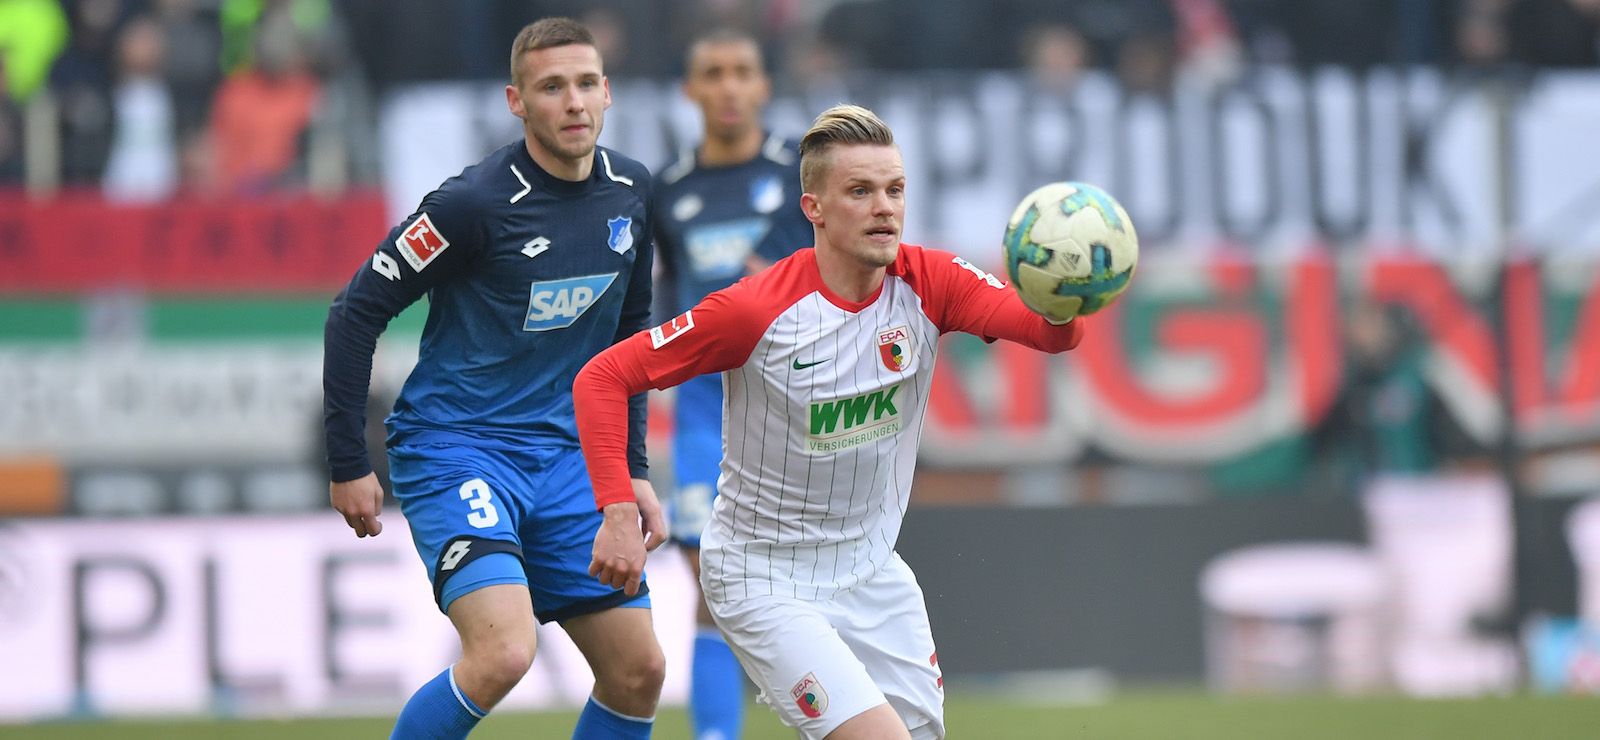 Manchester United target Philipp Max for left-back position: report